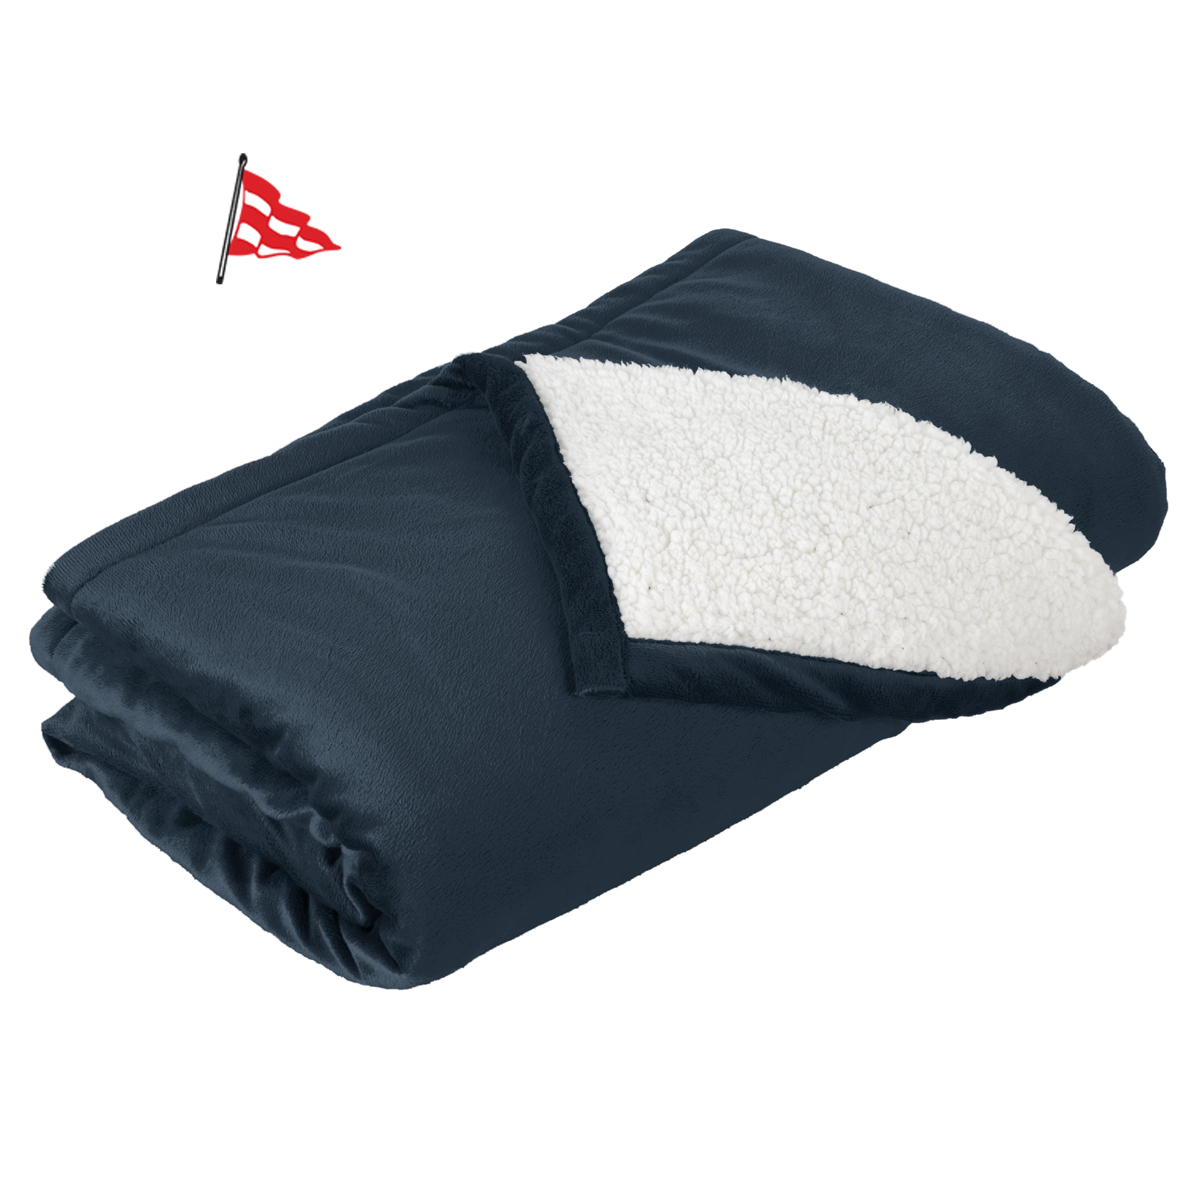 Black Rock Yacht Club - Fleece Blanket (BRYC704)